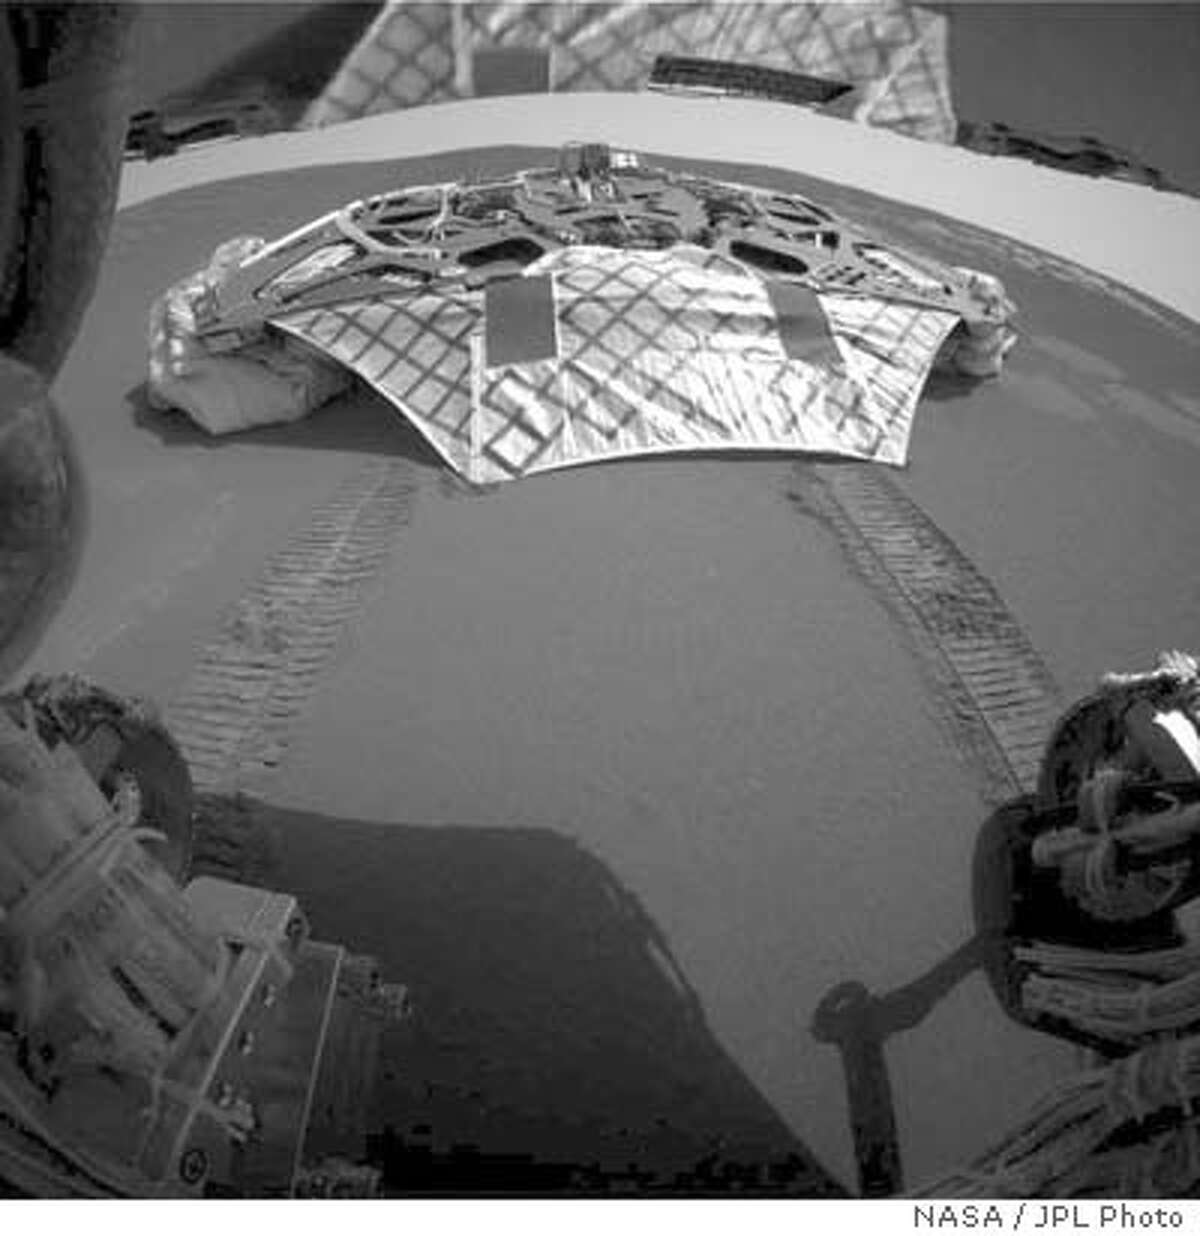 Opportunity rolled off the lander early Saturday morning and sent back a picture showing its tracks in the martian soil. NASA/JPL Photo